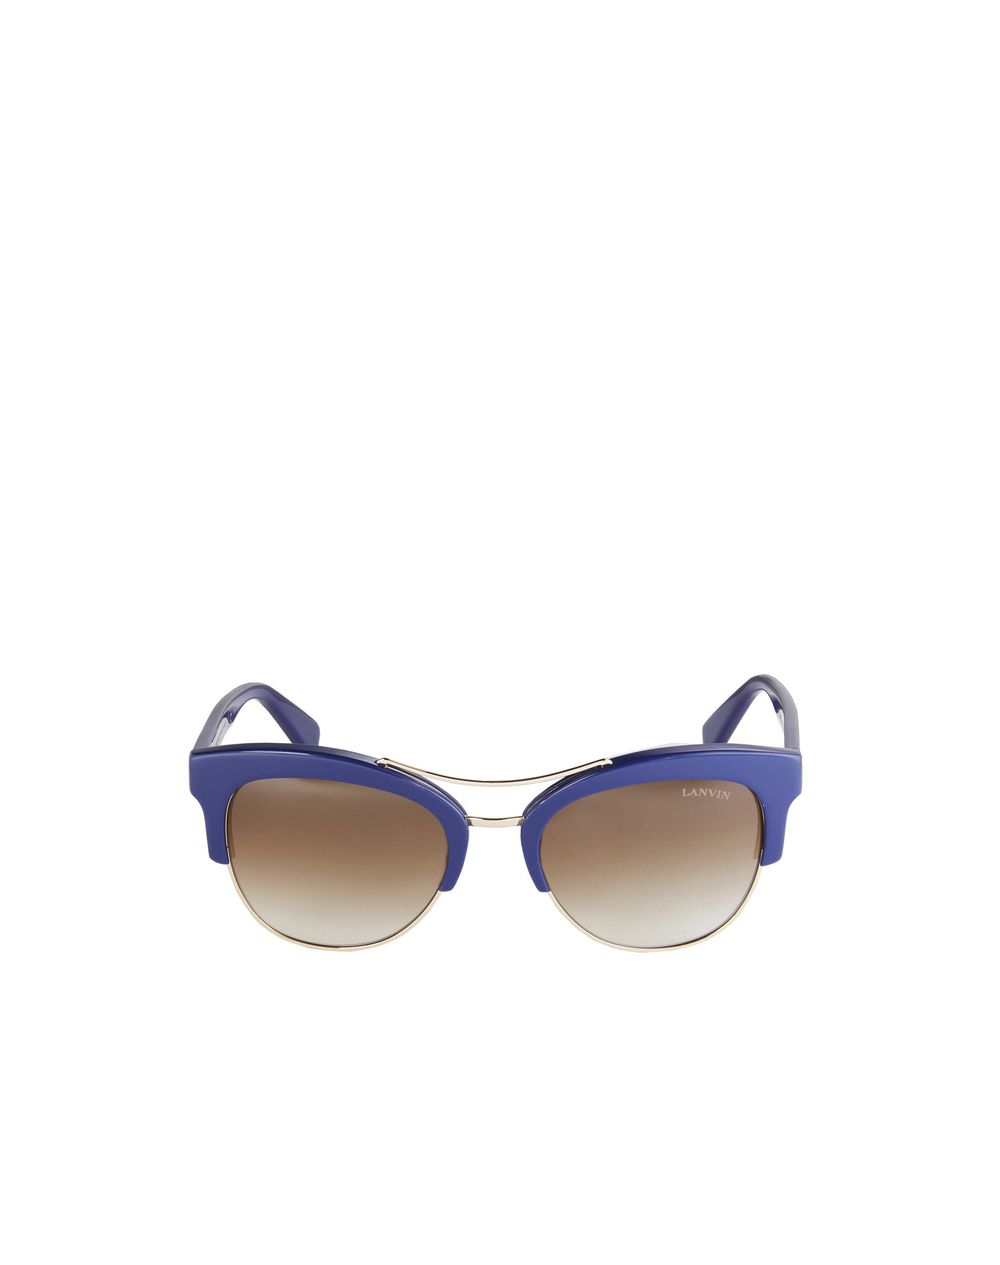 AVIATOR SUNGLASSES  - Lanvin